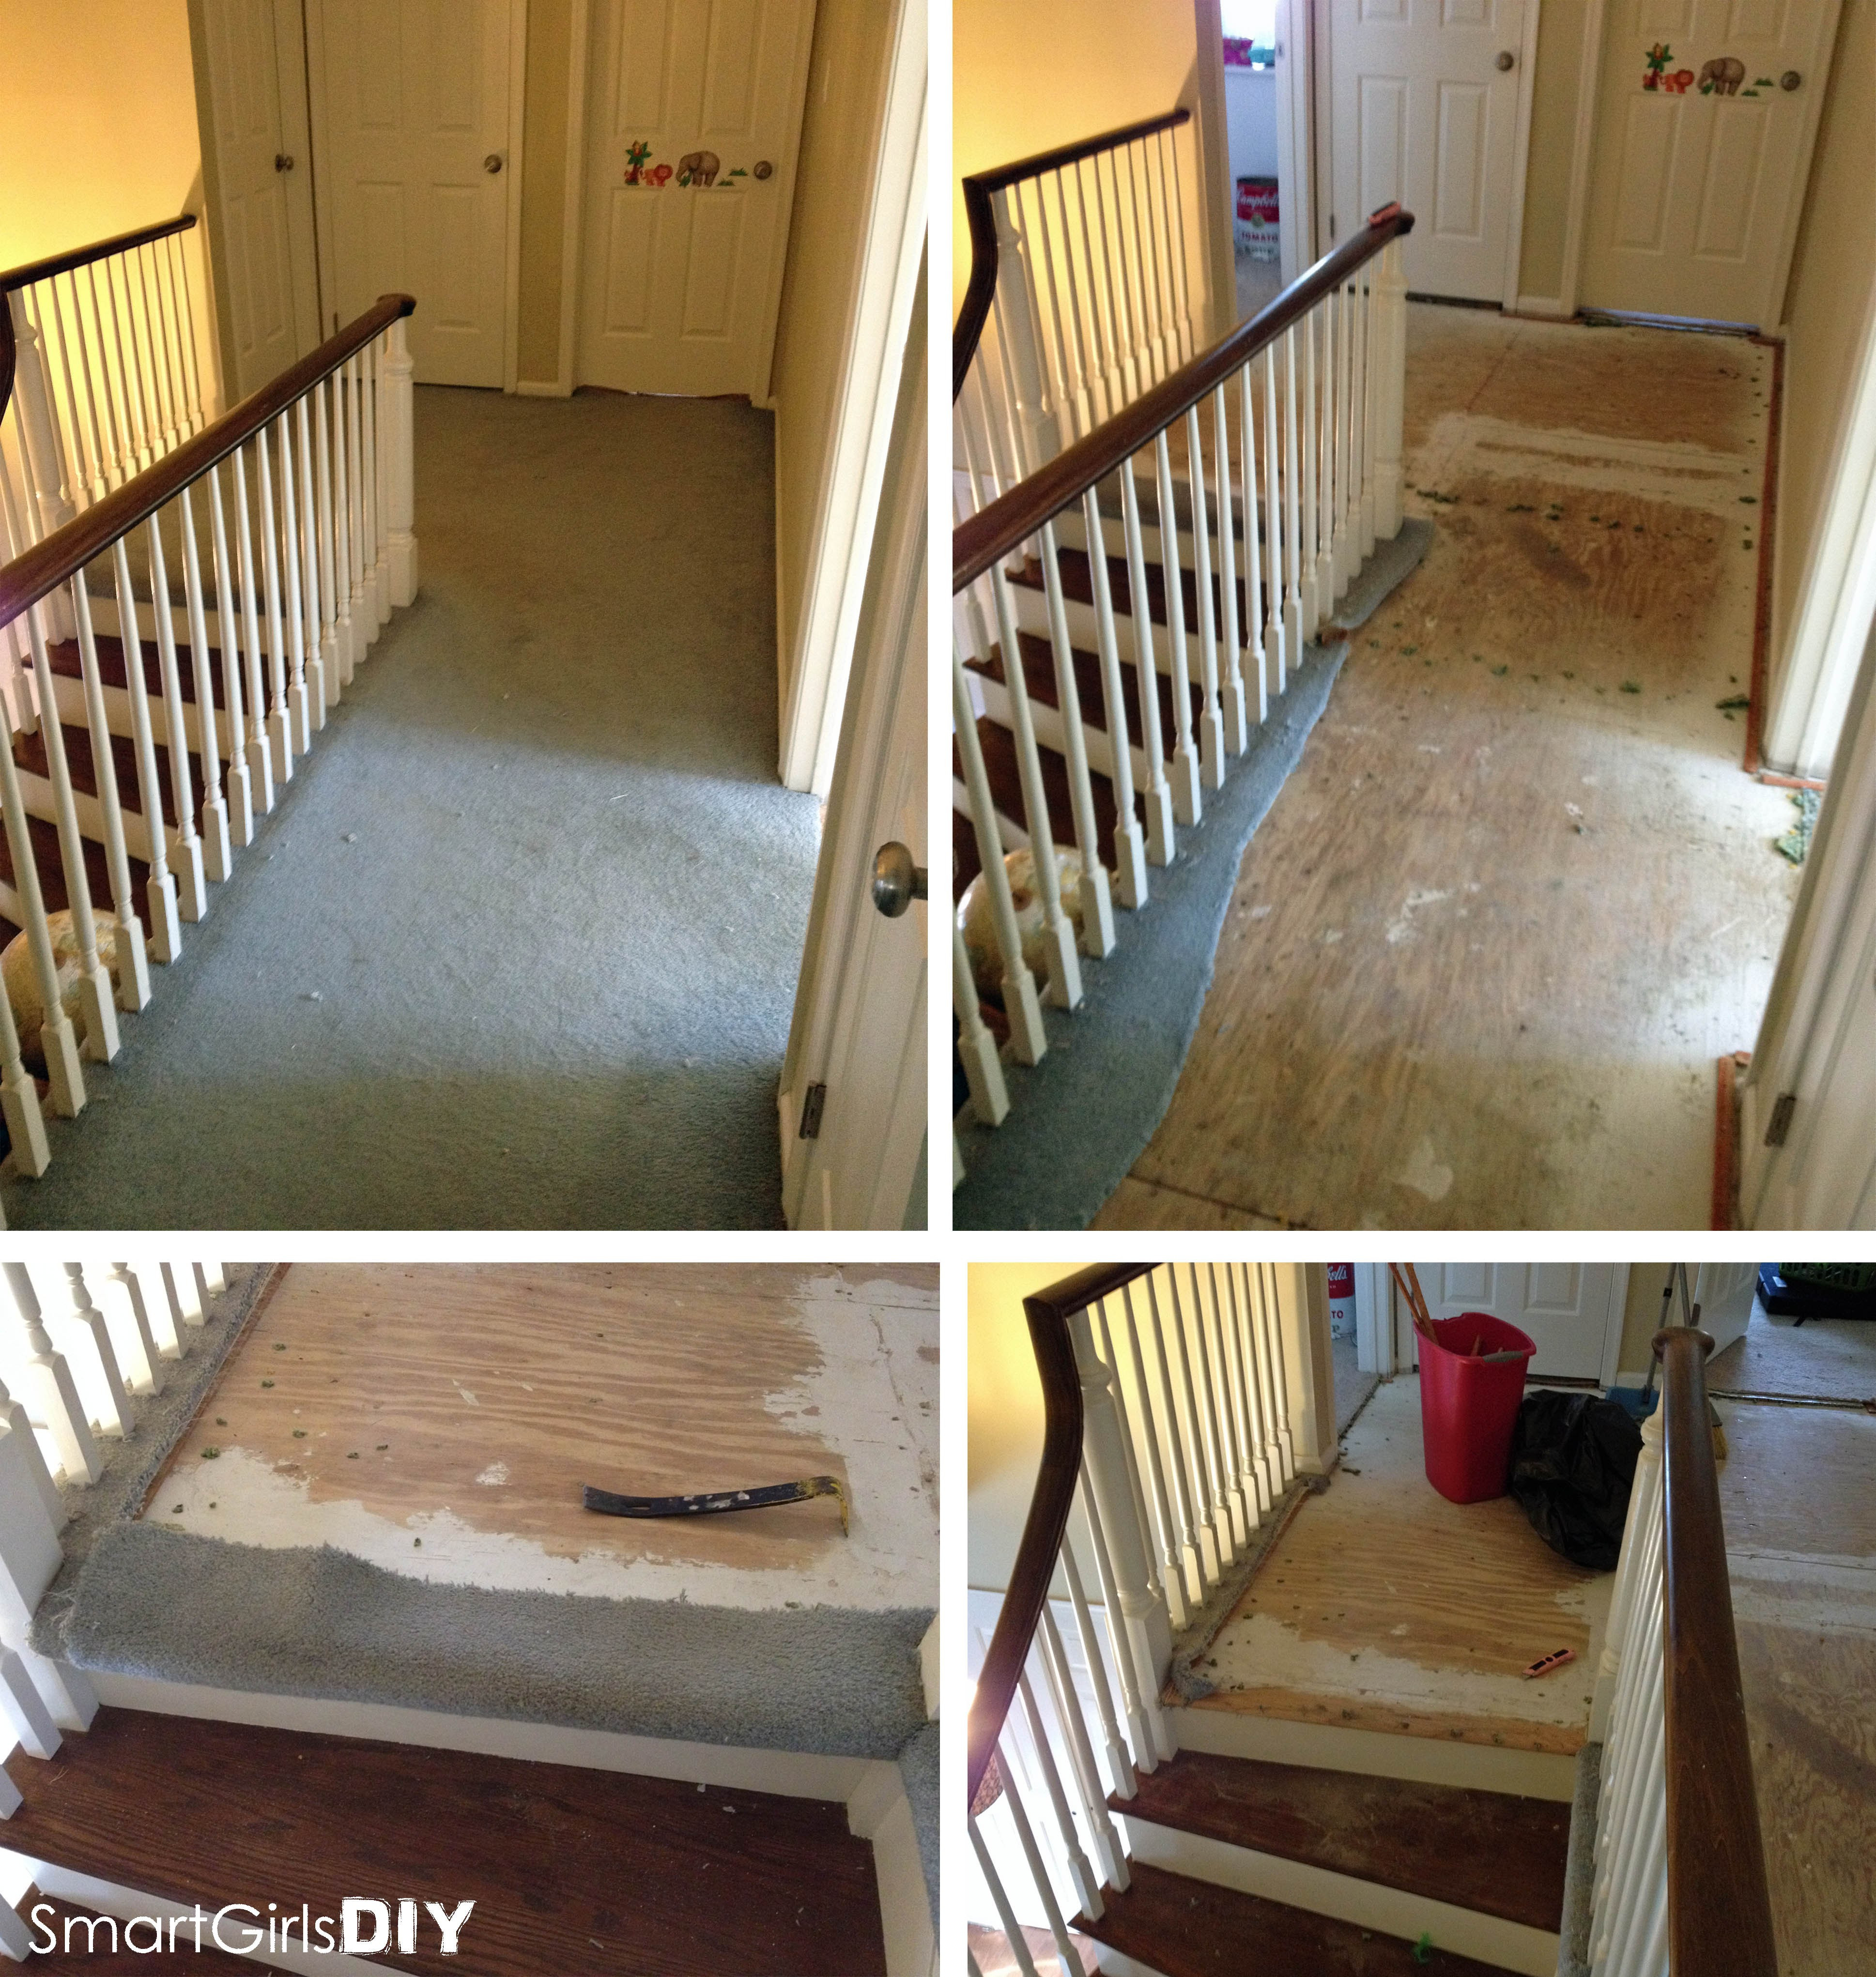 hardwood flooring job description of upstairs hallway 1 installing hardwood floors throughout removing carpet from hallway